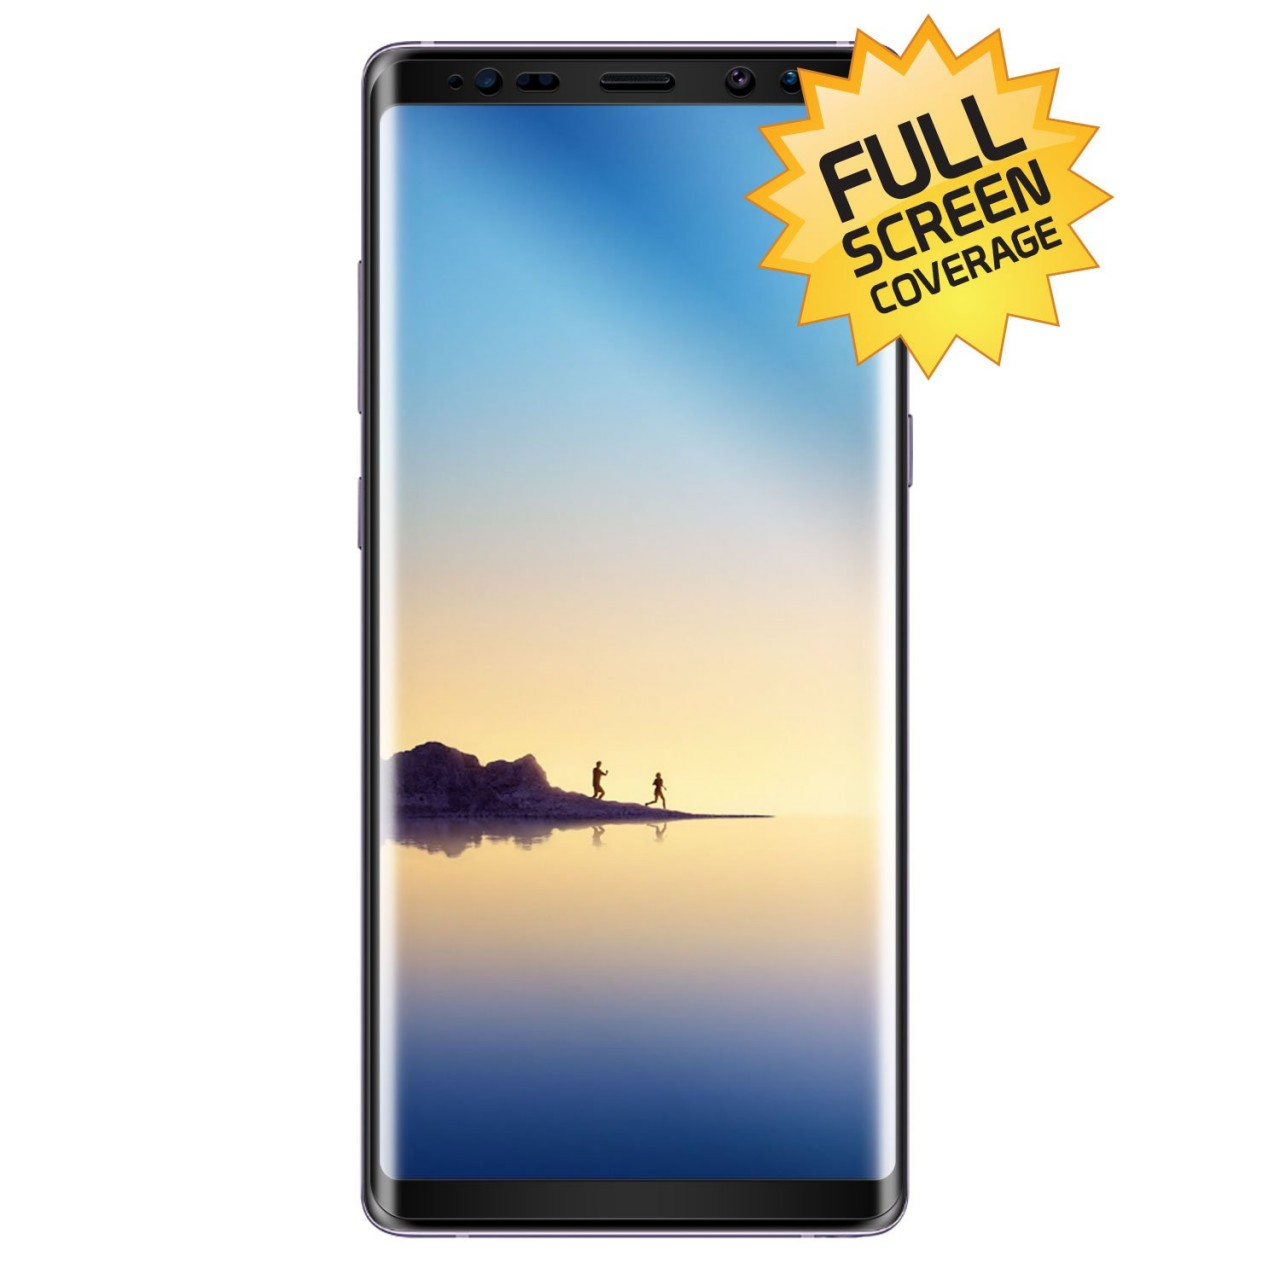 5D TEMPERED GLASS PREMIUM FULL FACE CURVED - ΠΡΟΣΤΑΤΕΥΤΙΚΟ ΤΖΑΜΙ ΟΘΟΝΗΣ ΓΙΑ SAMSUNG GALAXY S9 PLUS - BLACK